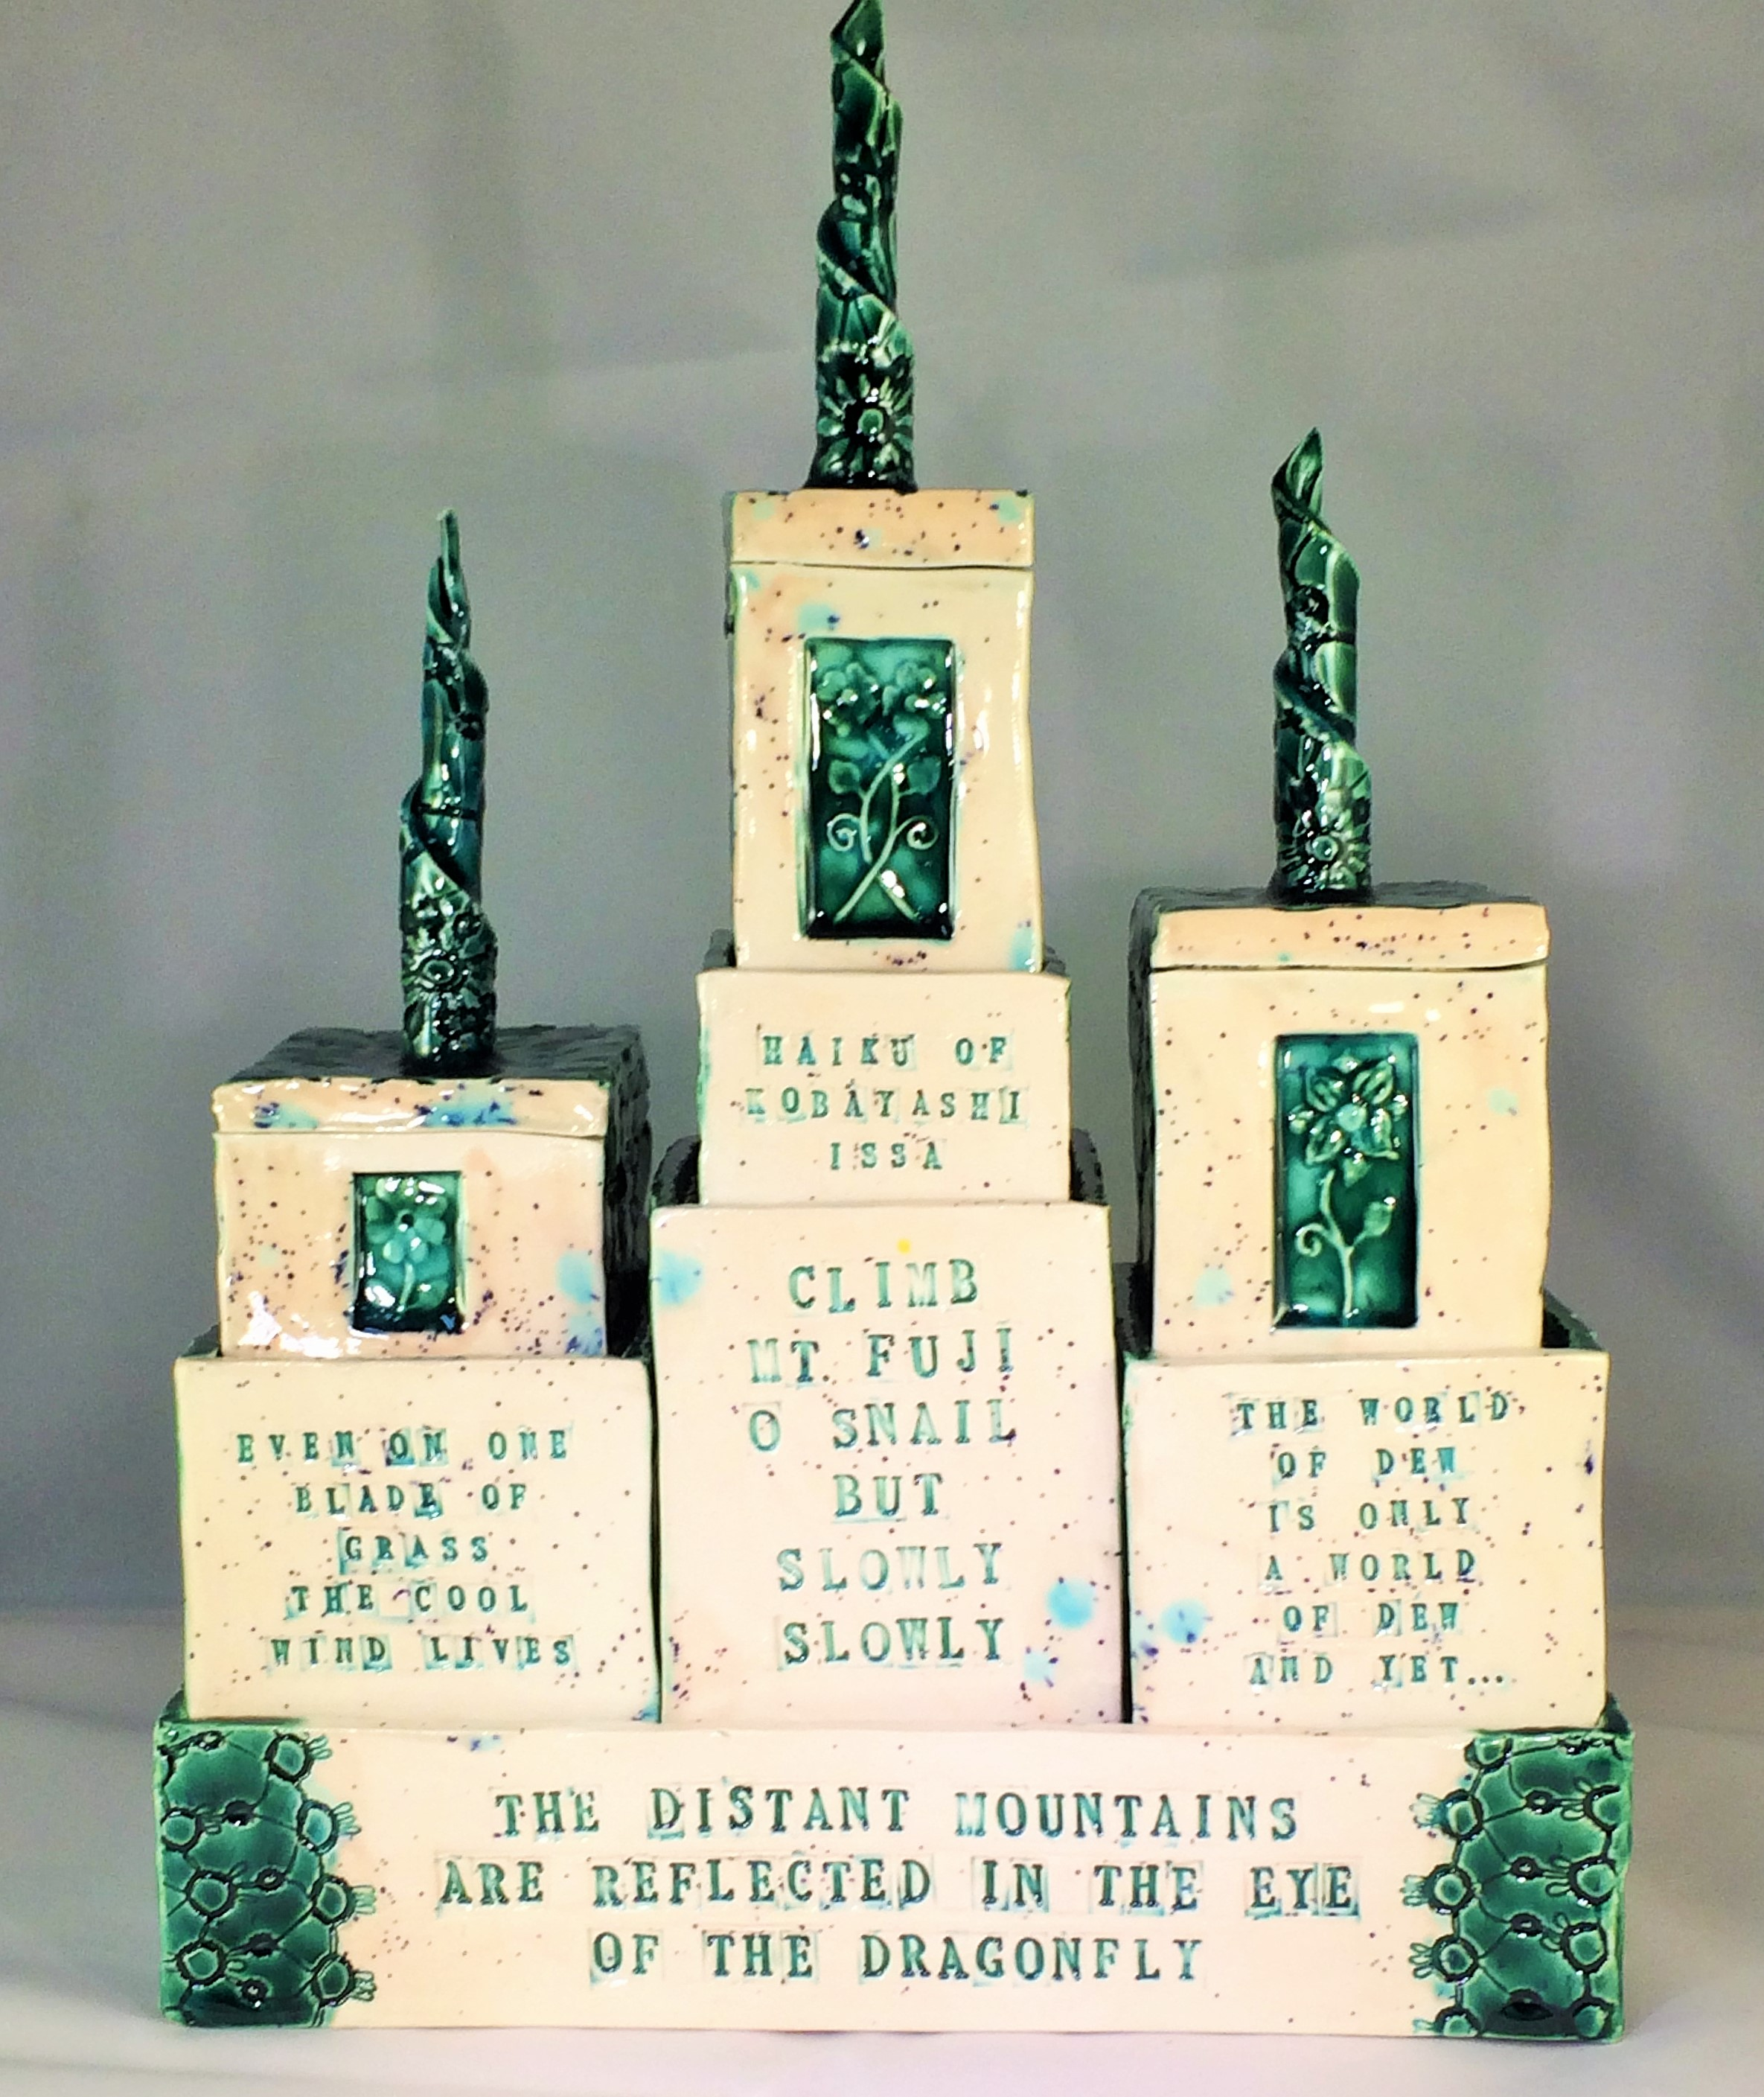 This is the second piece that will be in the gallery. It is a series of boxes with different haiku from Kobayashi Issa.